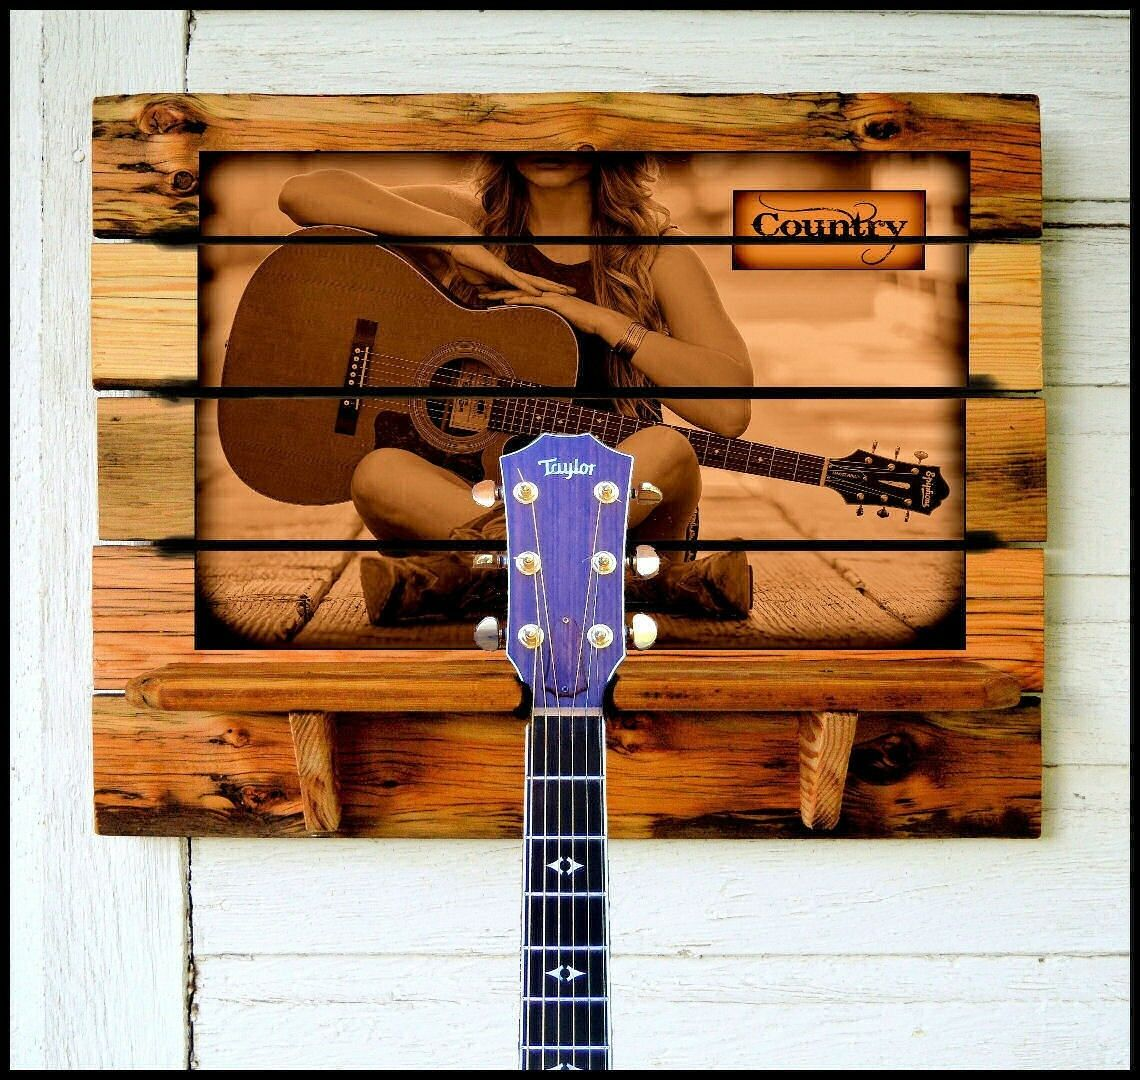 Guitar Rack  Country  (or Personalize your Photo or favorite Artist) Barn wood